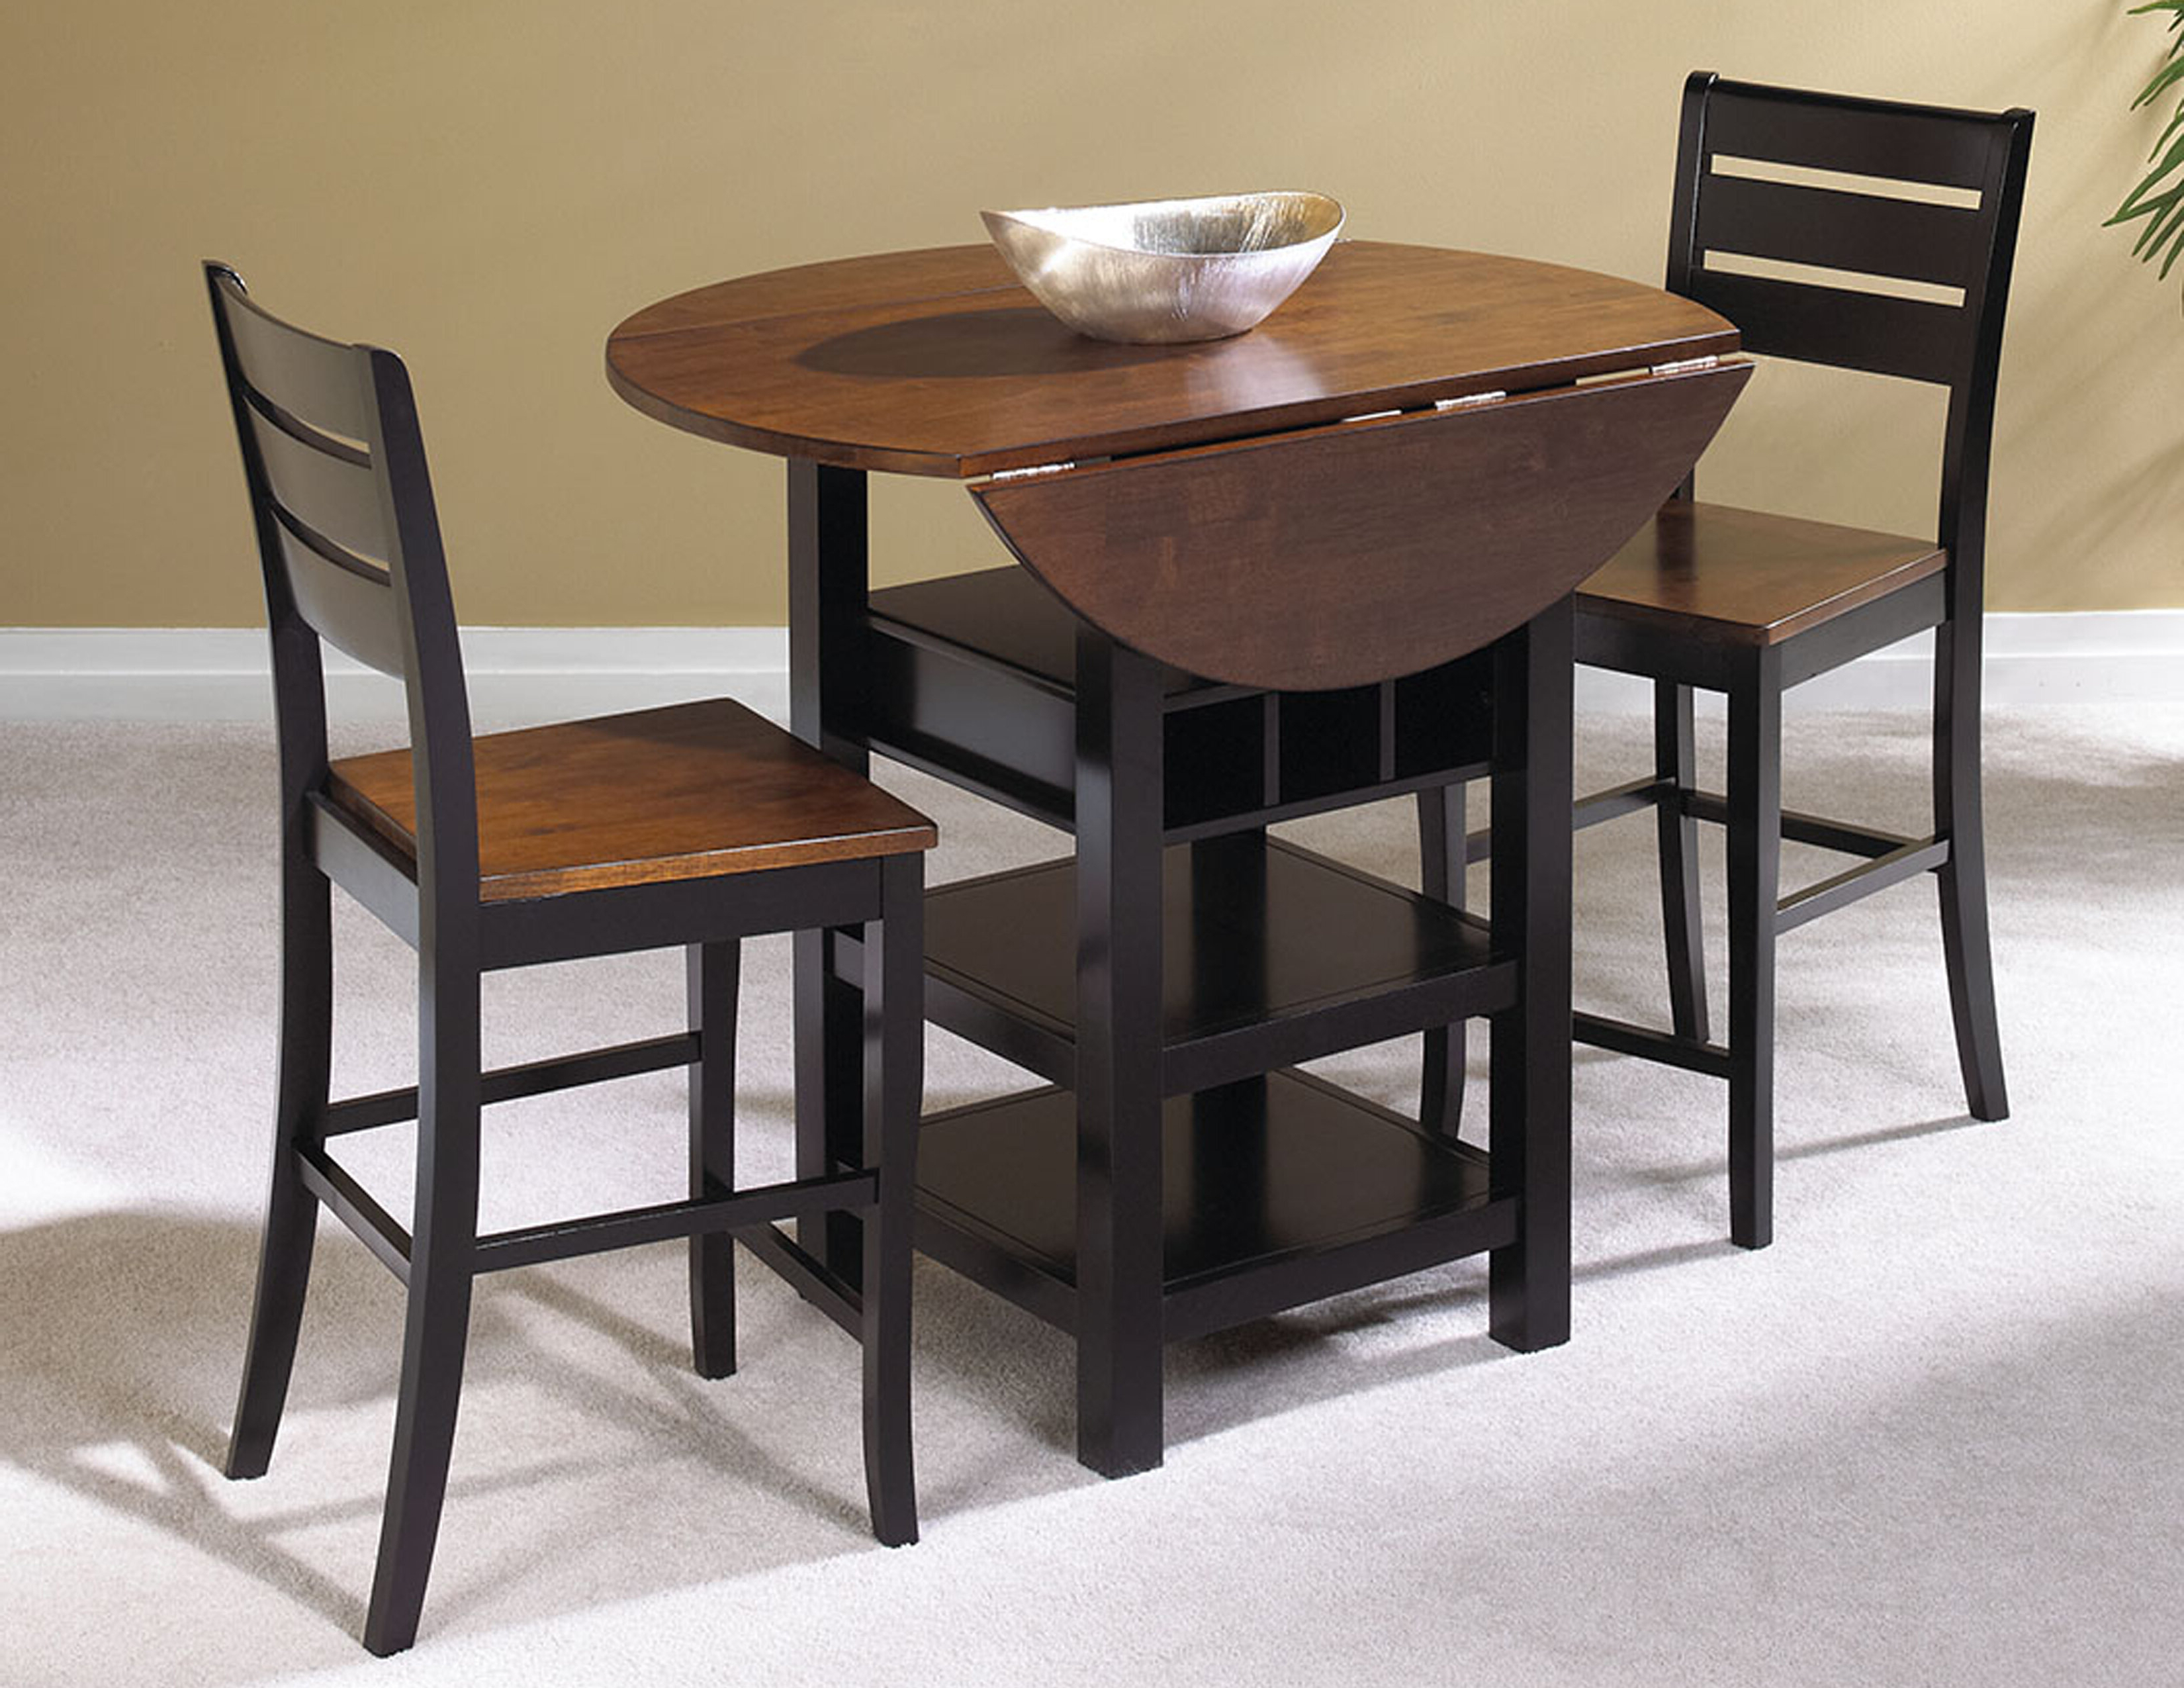 Winsted 4 Piece Counter Height Dining Sets Intended For Most Current Atwater 3 Piece Counter Height Dining Set (View 13 of 20)